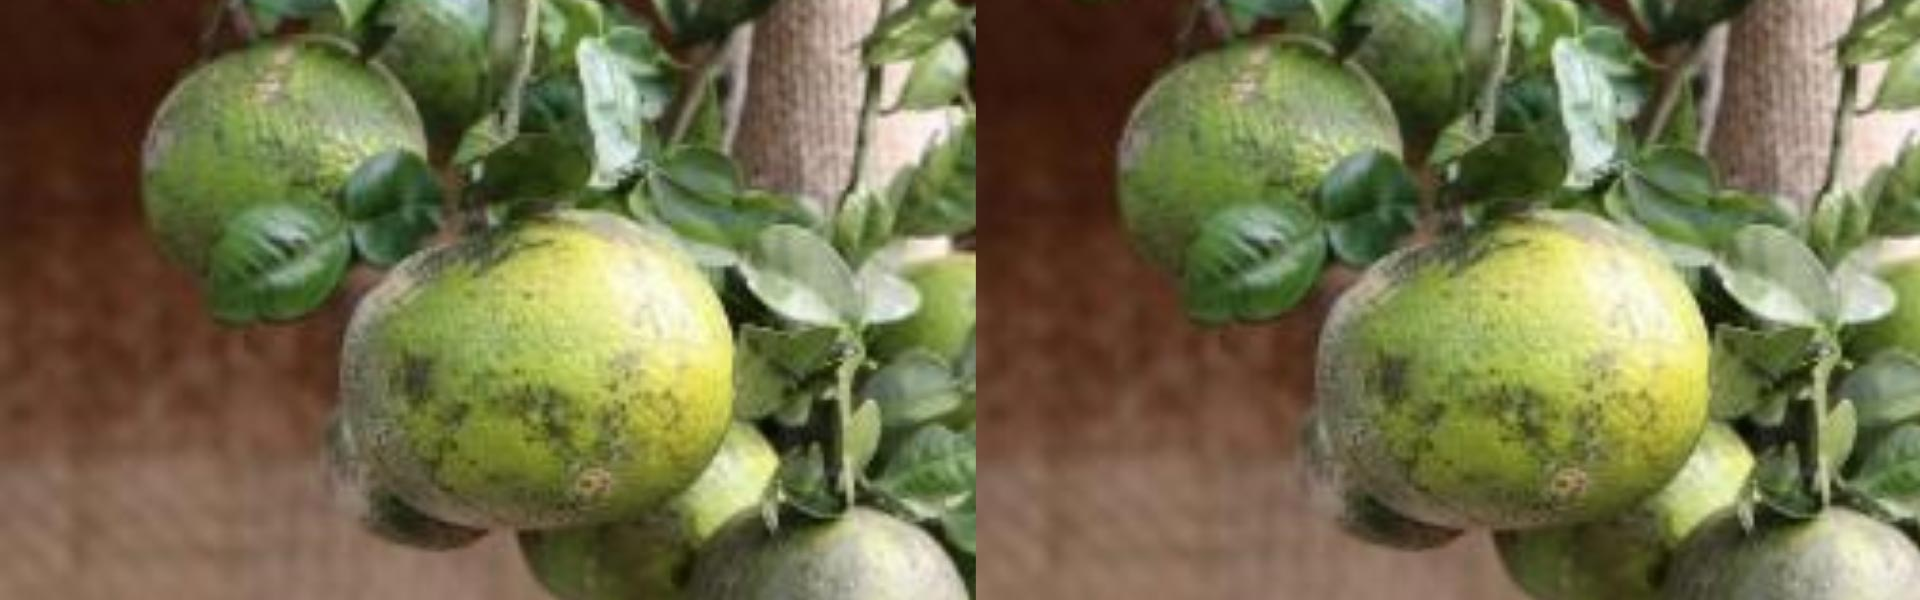 Soh Kwit - Medicinal And Culinary Wild Orange Of Meghalaya